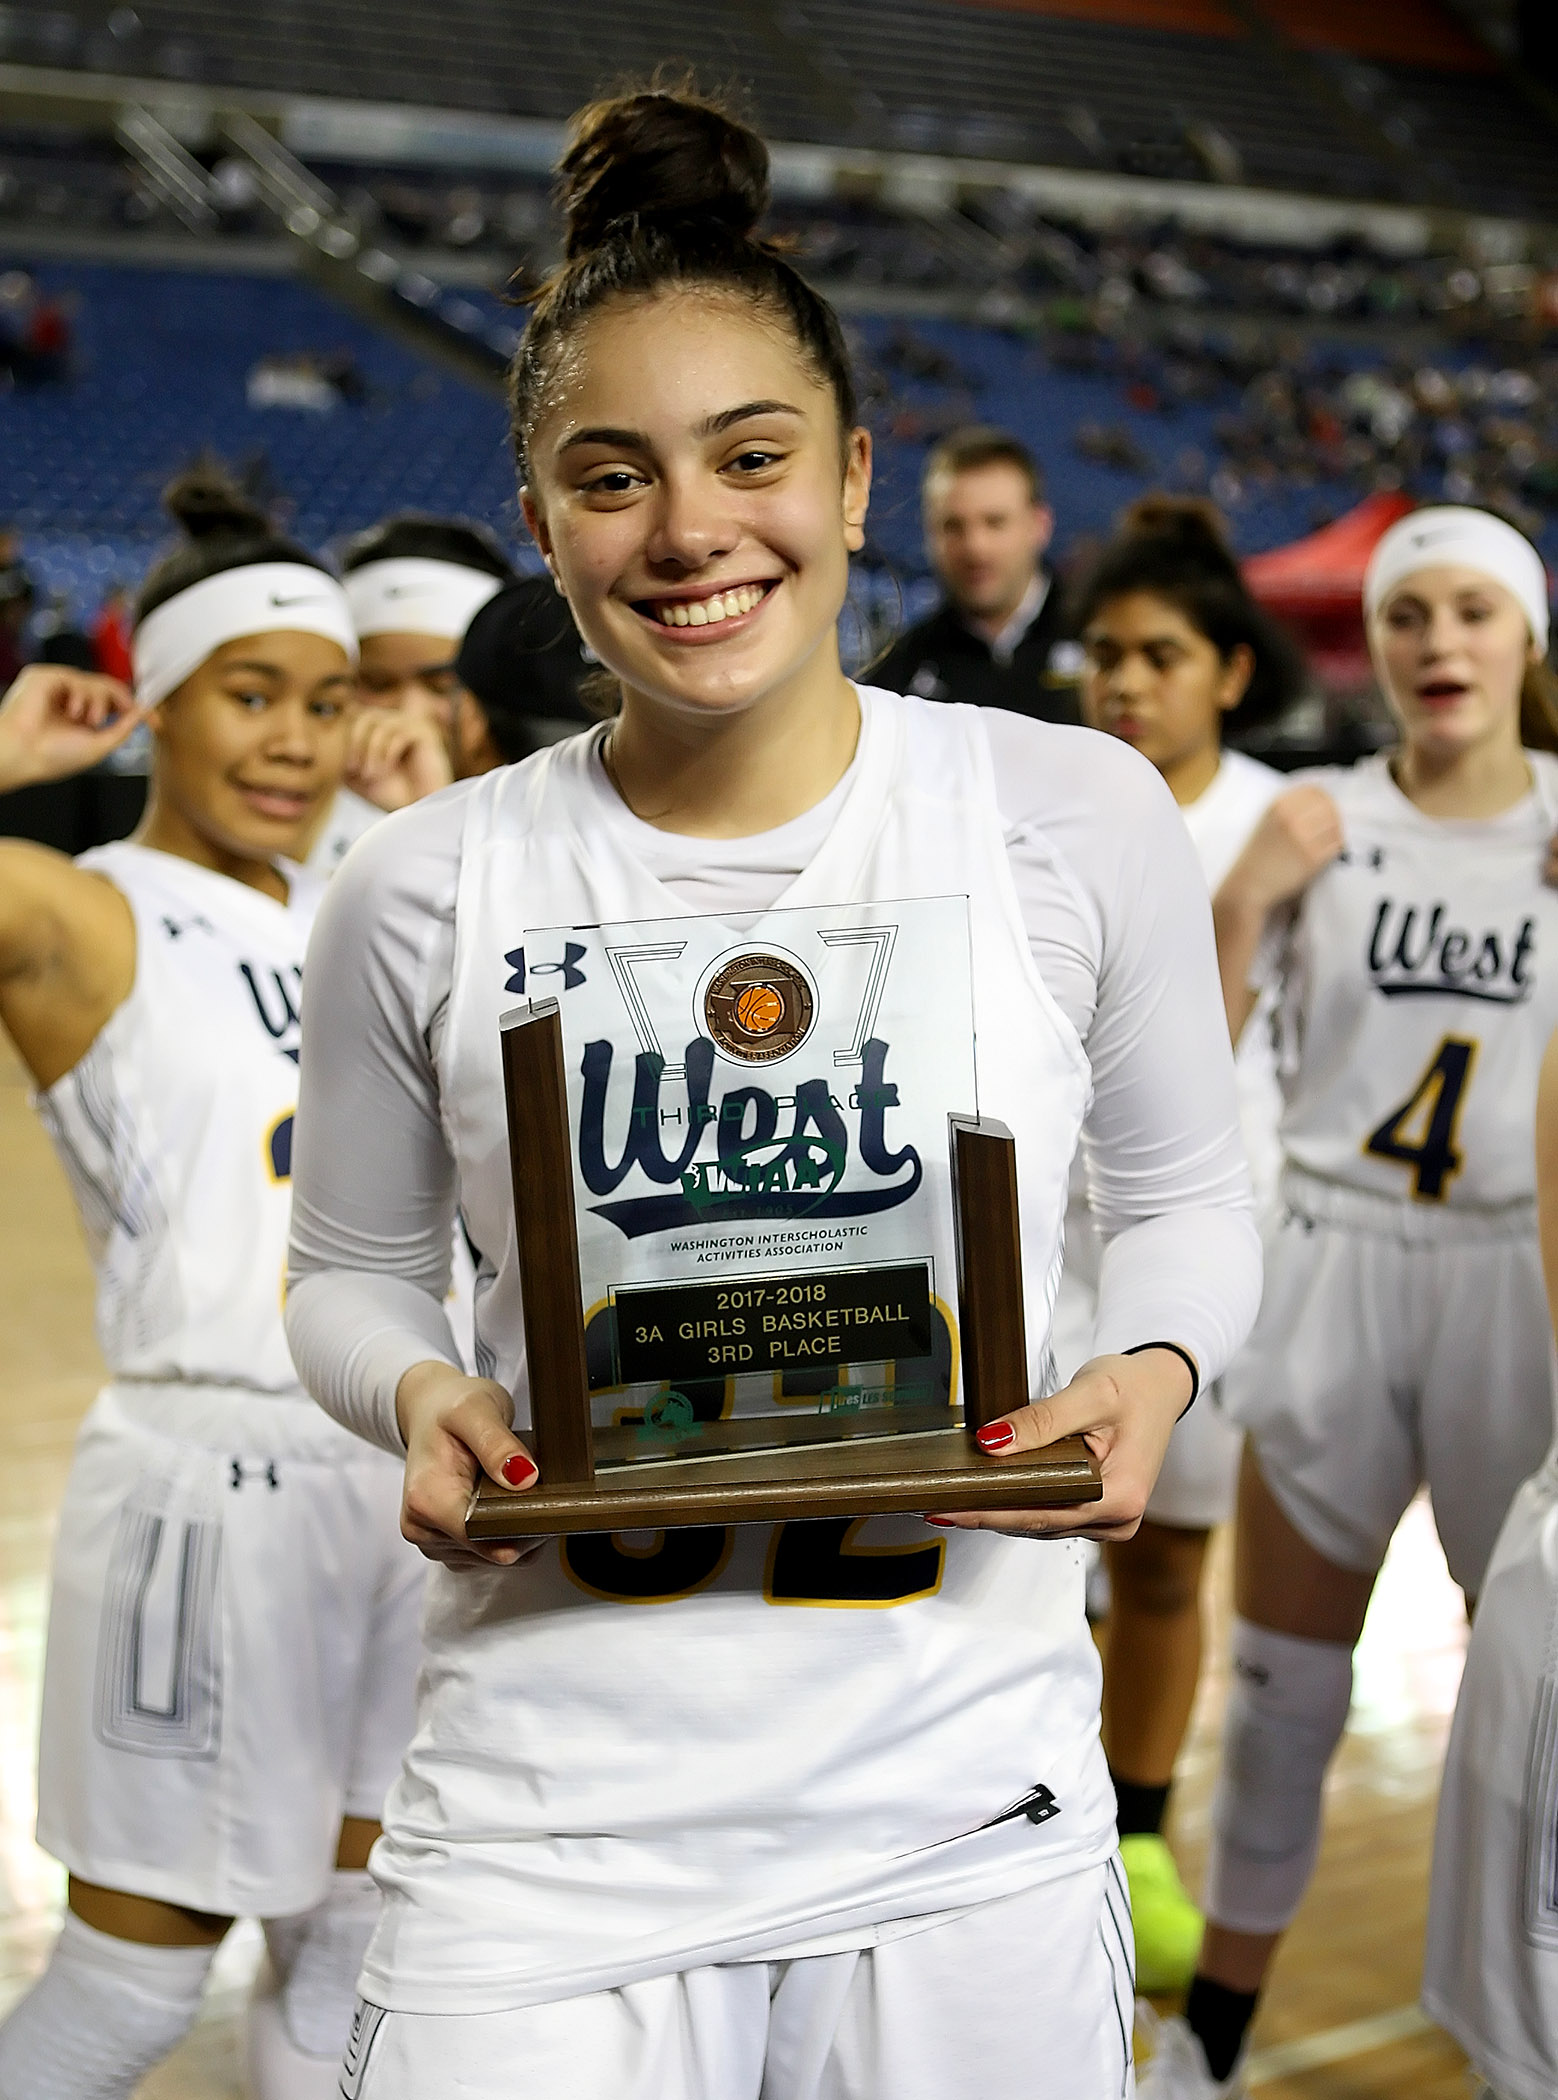 West Seattle's Meghan Fiso shows off the teams 3rd place award.